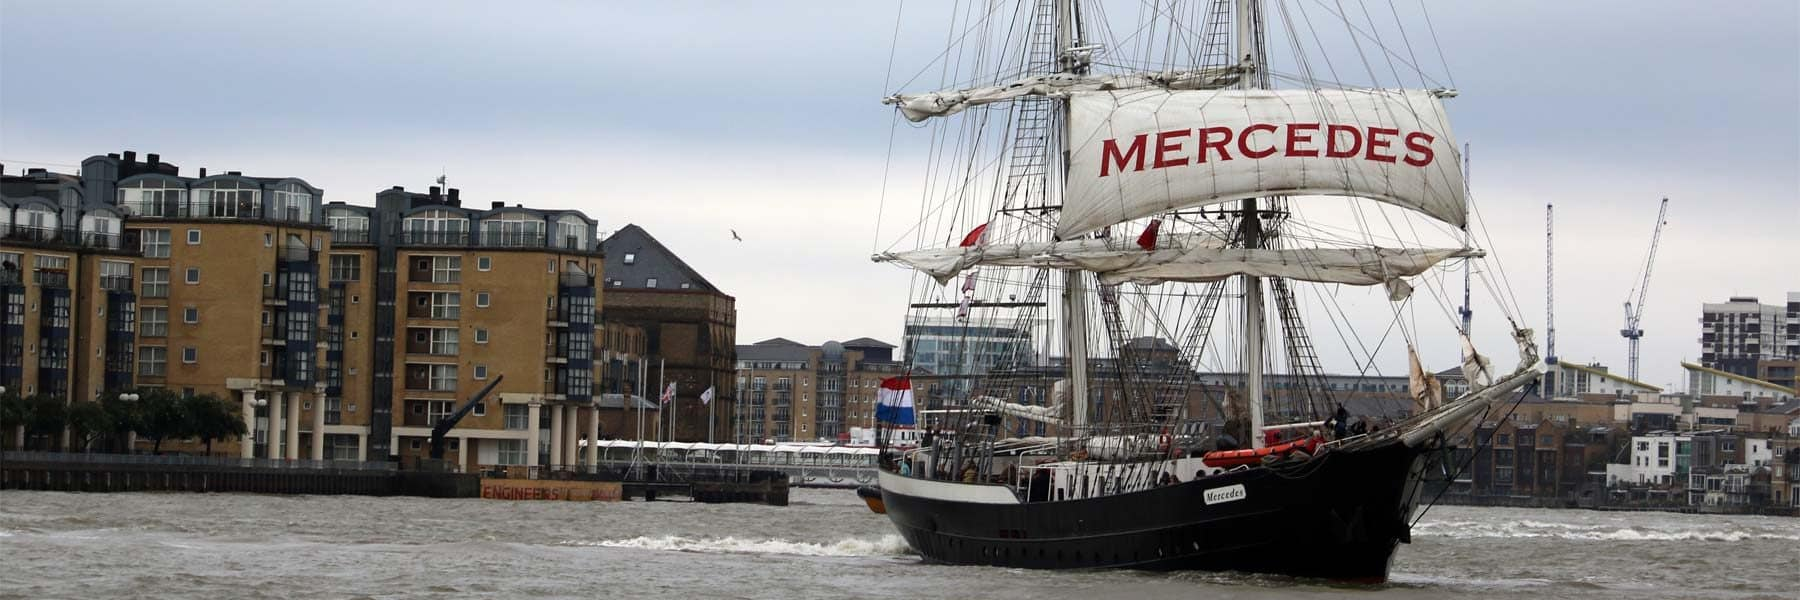 Tall Ship Mercedes